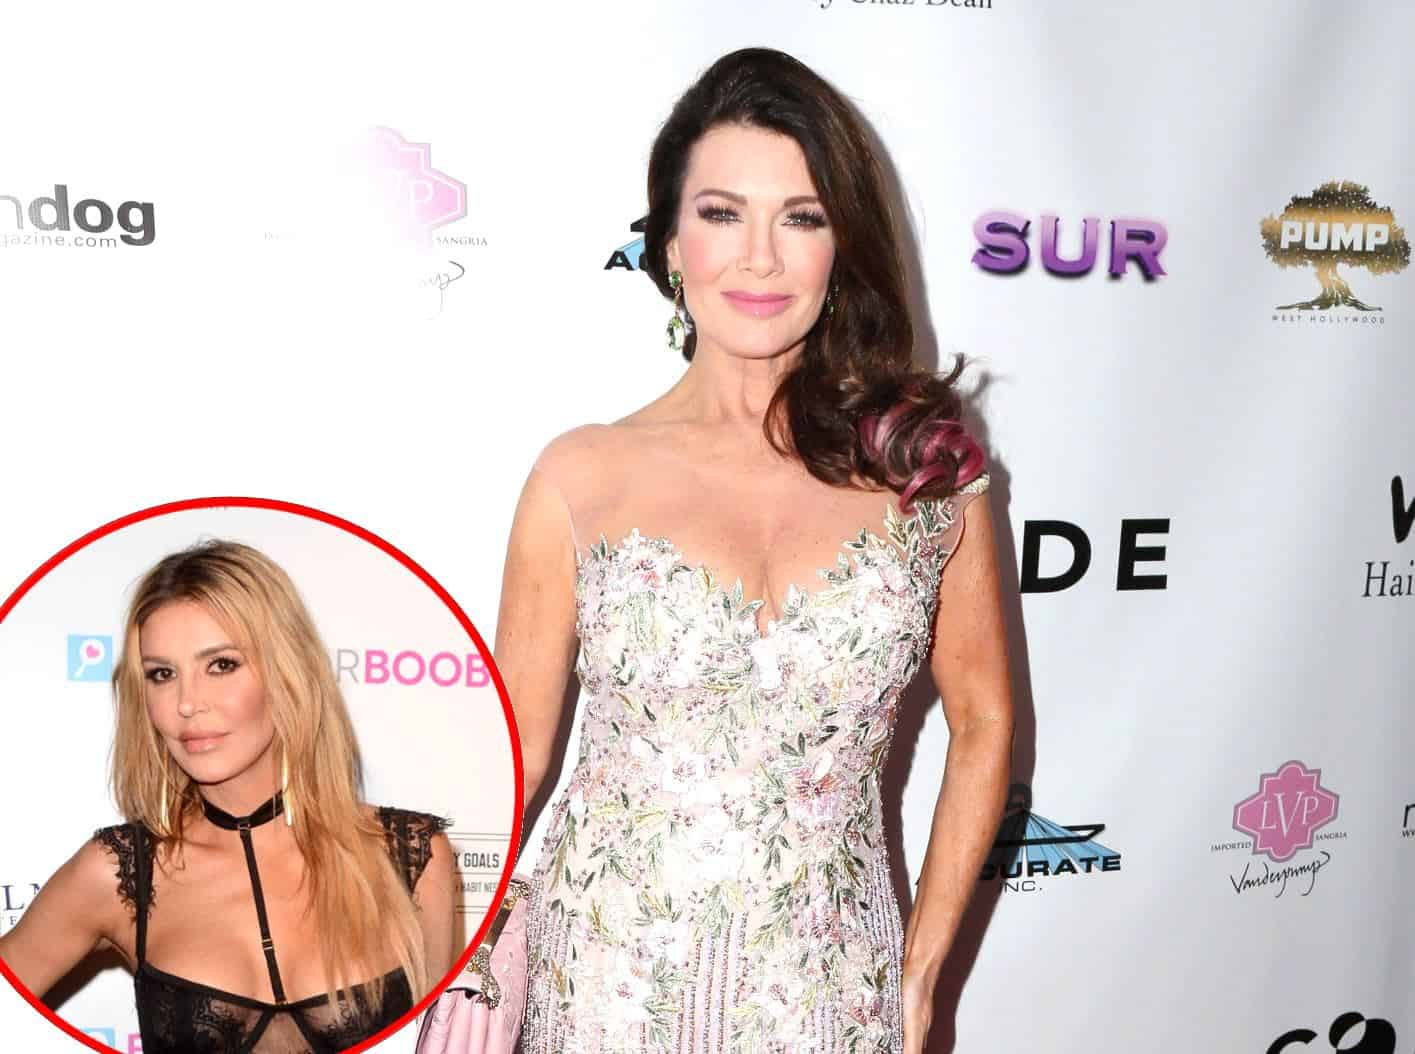 Will Lisa Vanderpump Skip RHOBH Cast Trip to France? Brandi Glanville Feels Sorry for Lisa